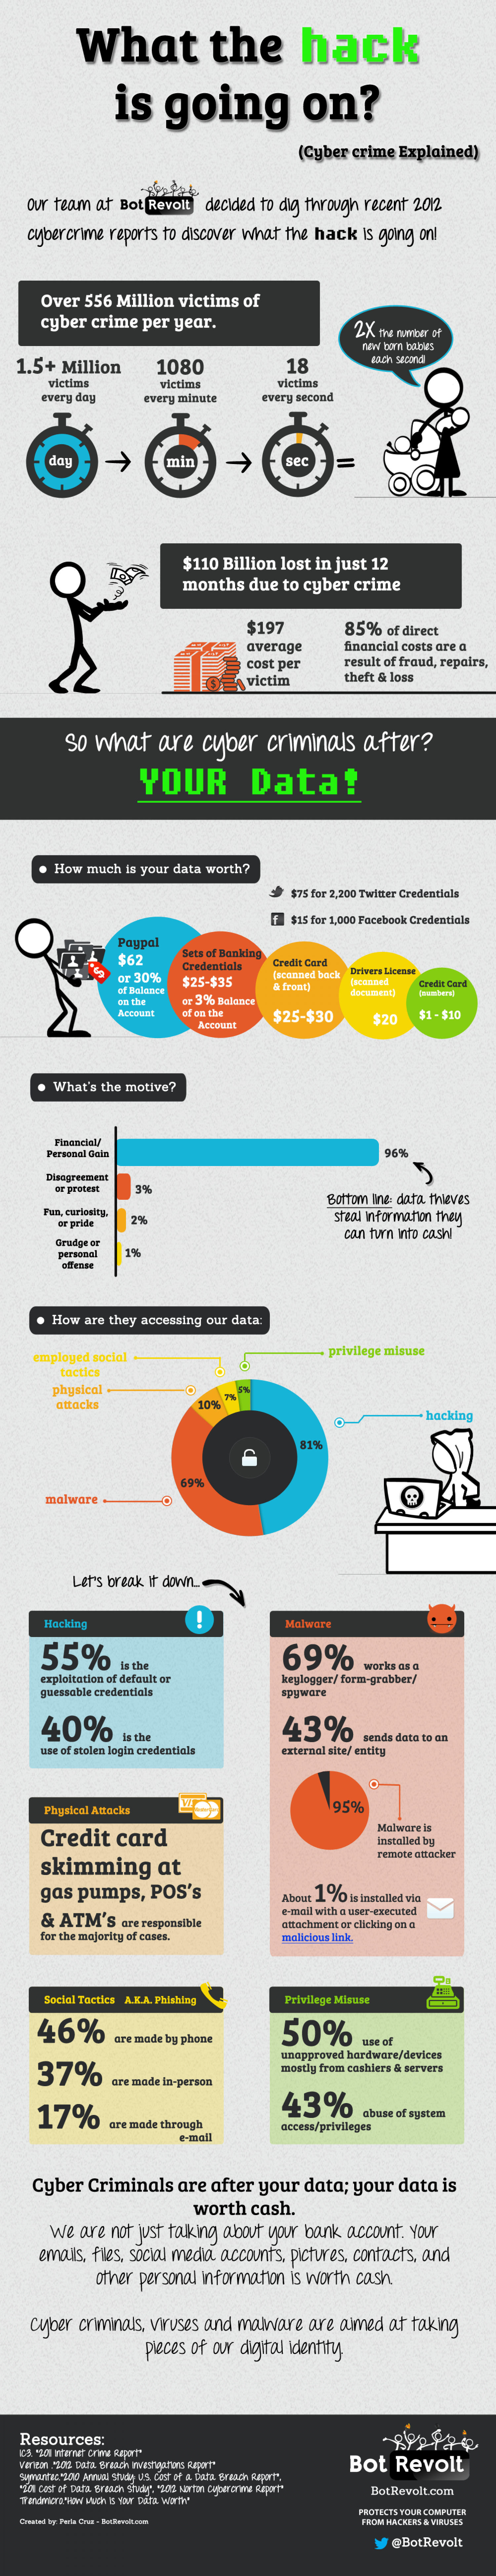 What the *hack* is going on? Infographic